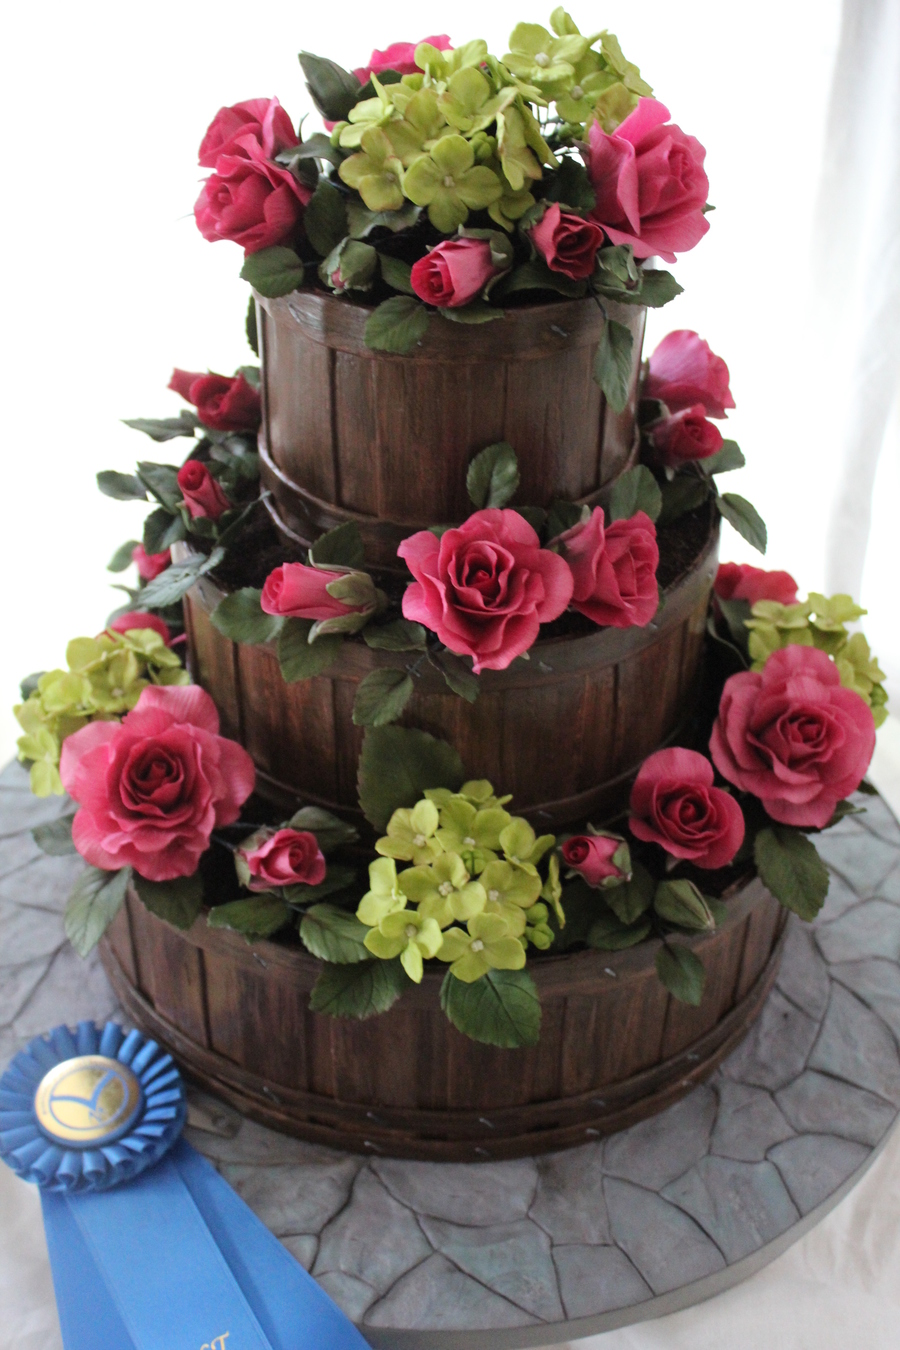 Cake Decorating With Fondant Flowers : Garden Basket Wedding Cake - CakeCentral.com